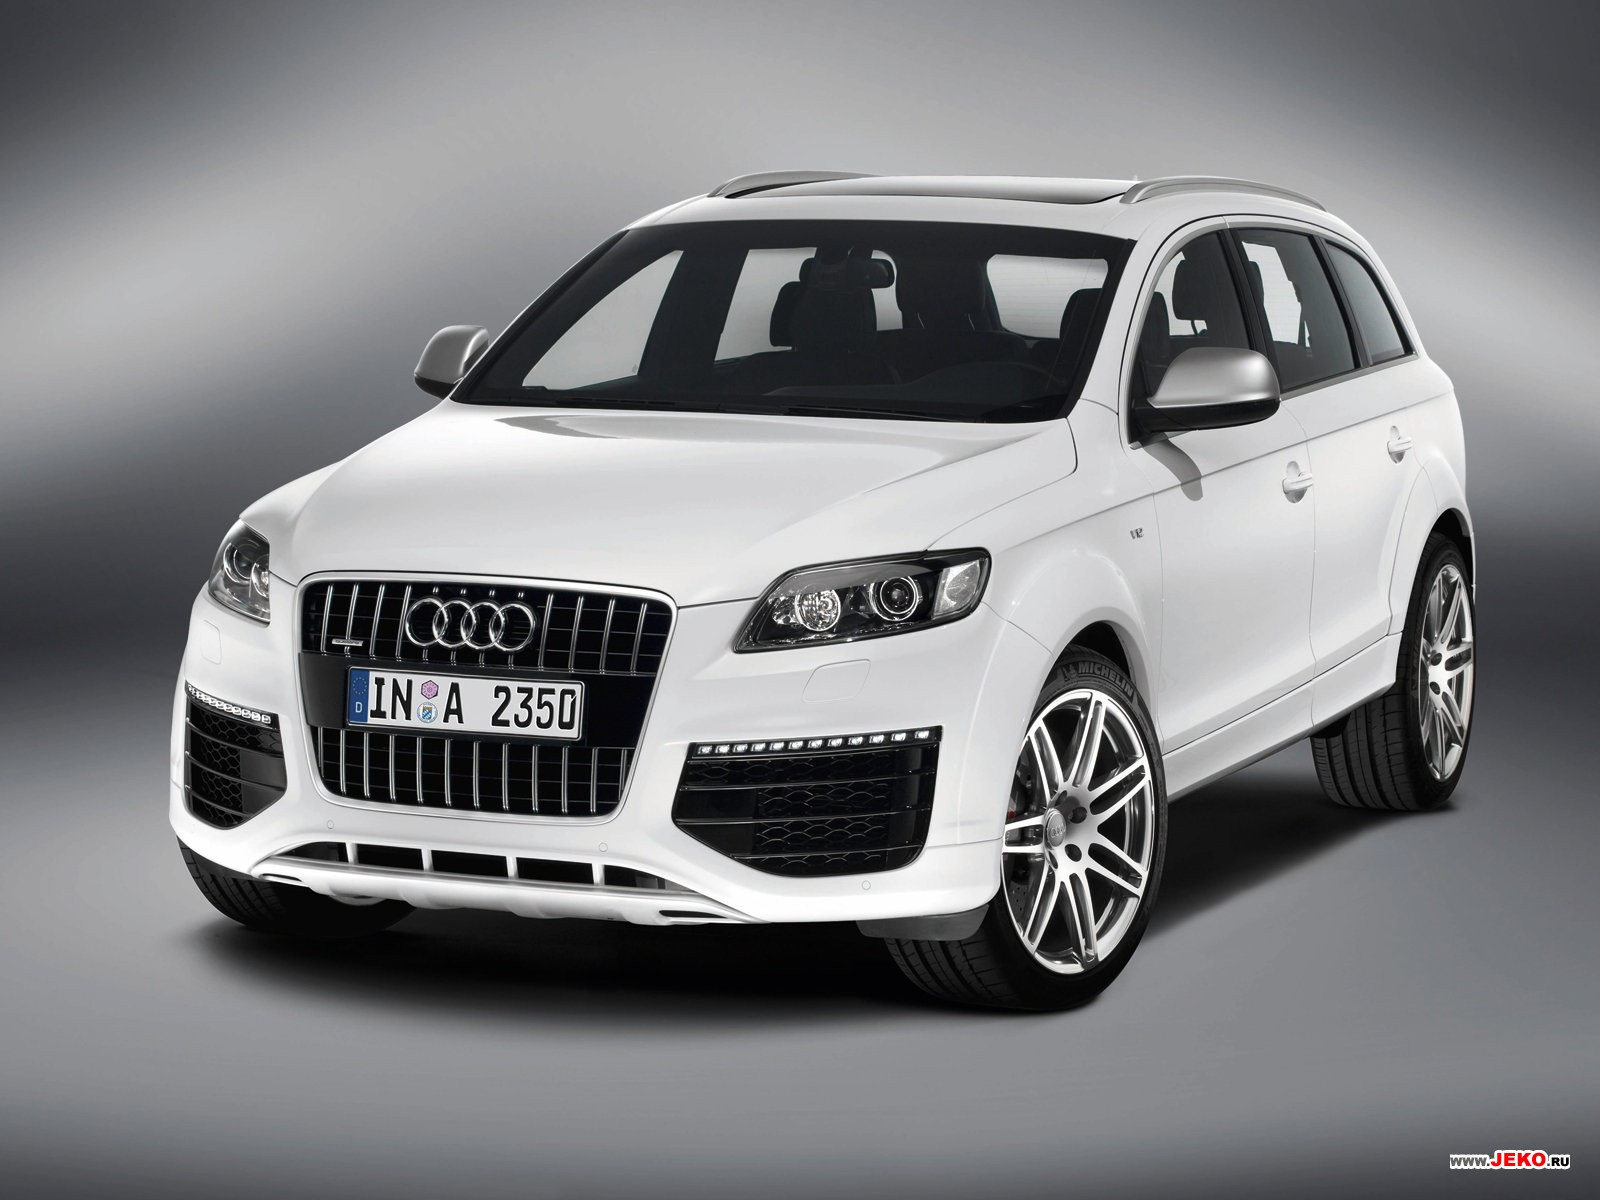 Audi Q7 Tuning Front View HD Wallpaper